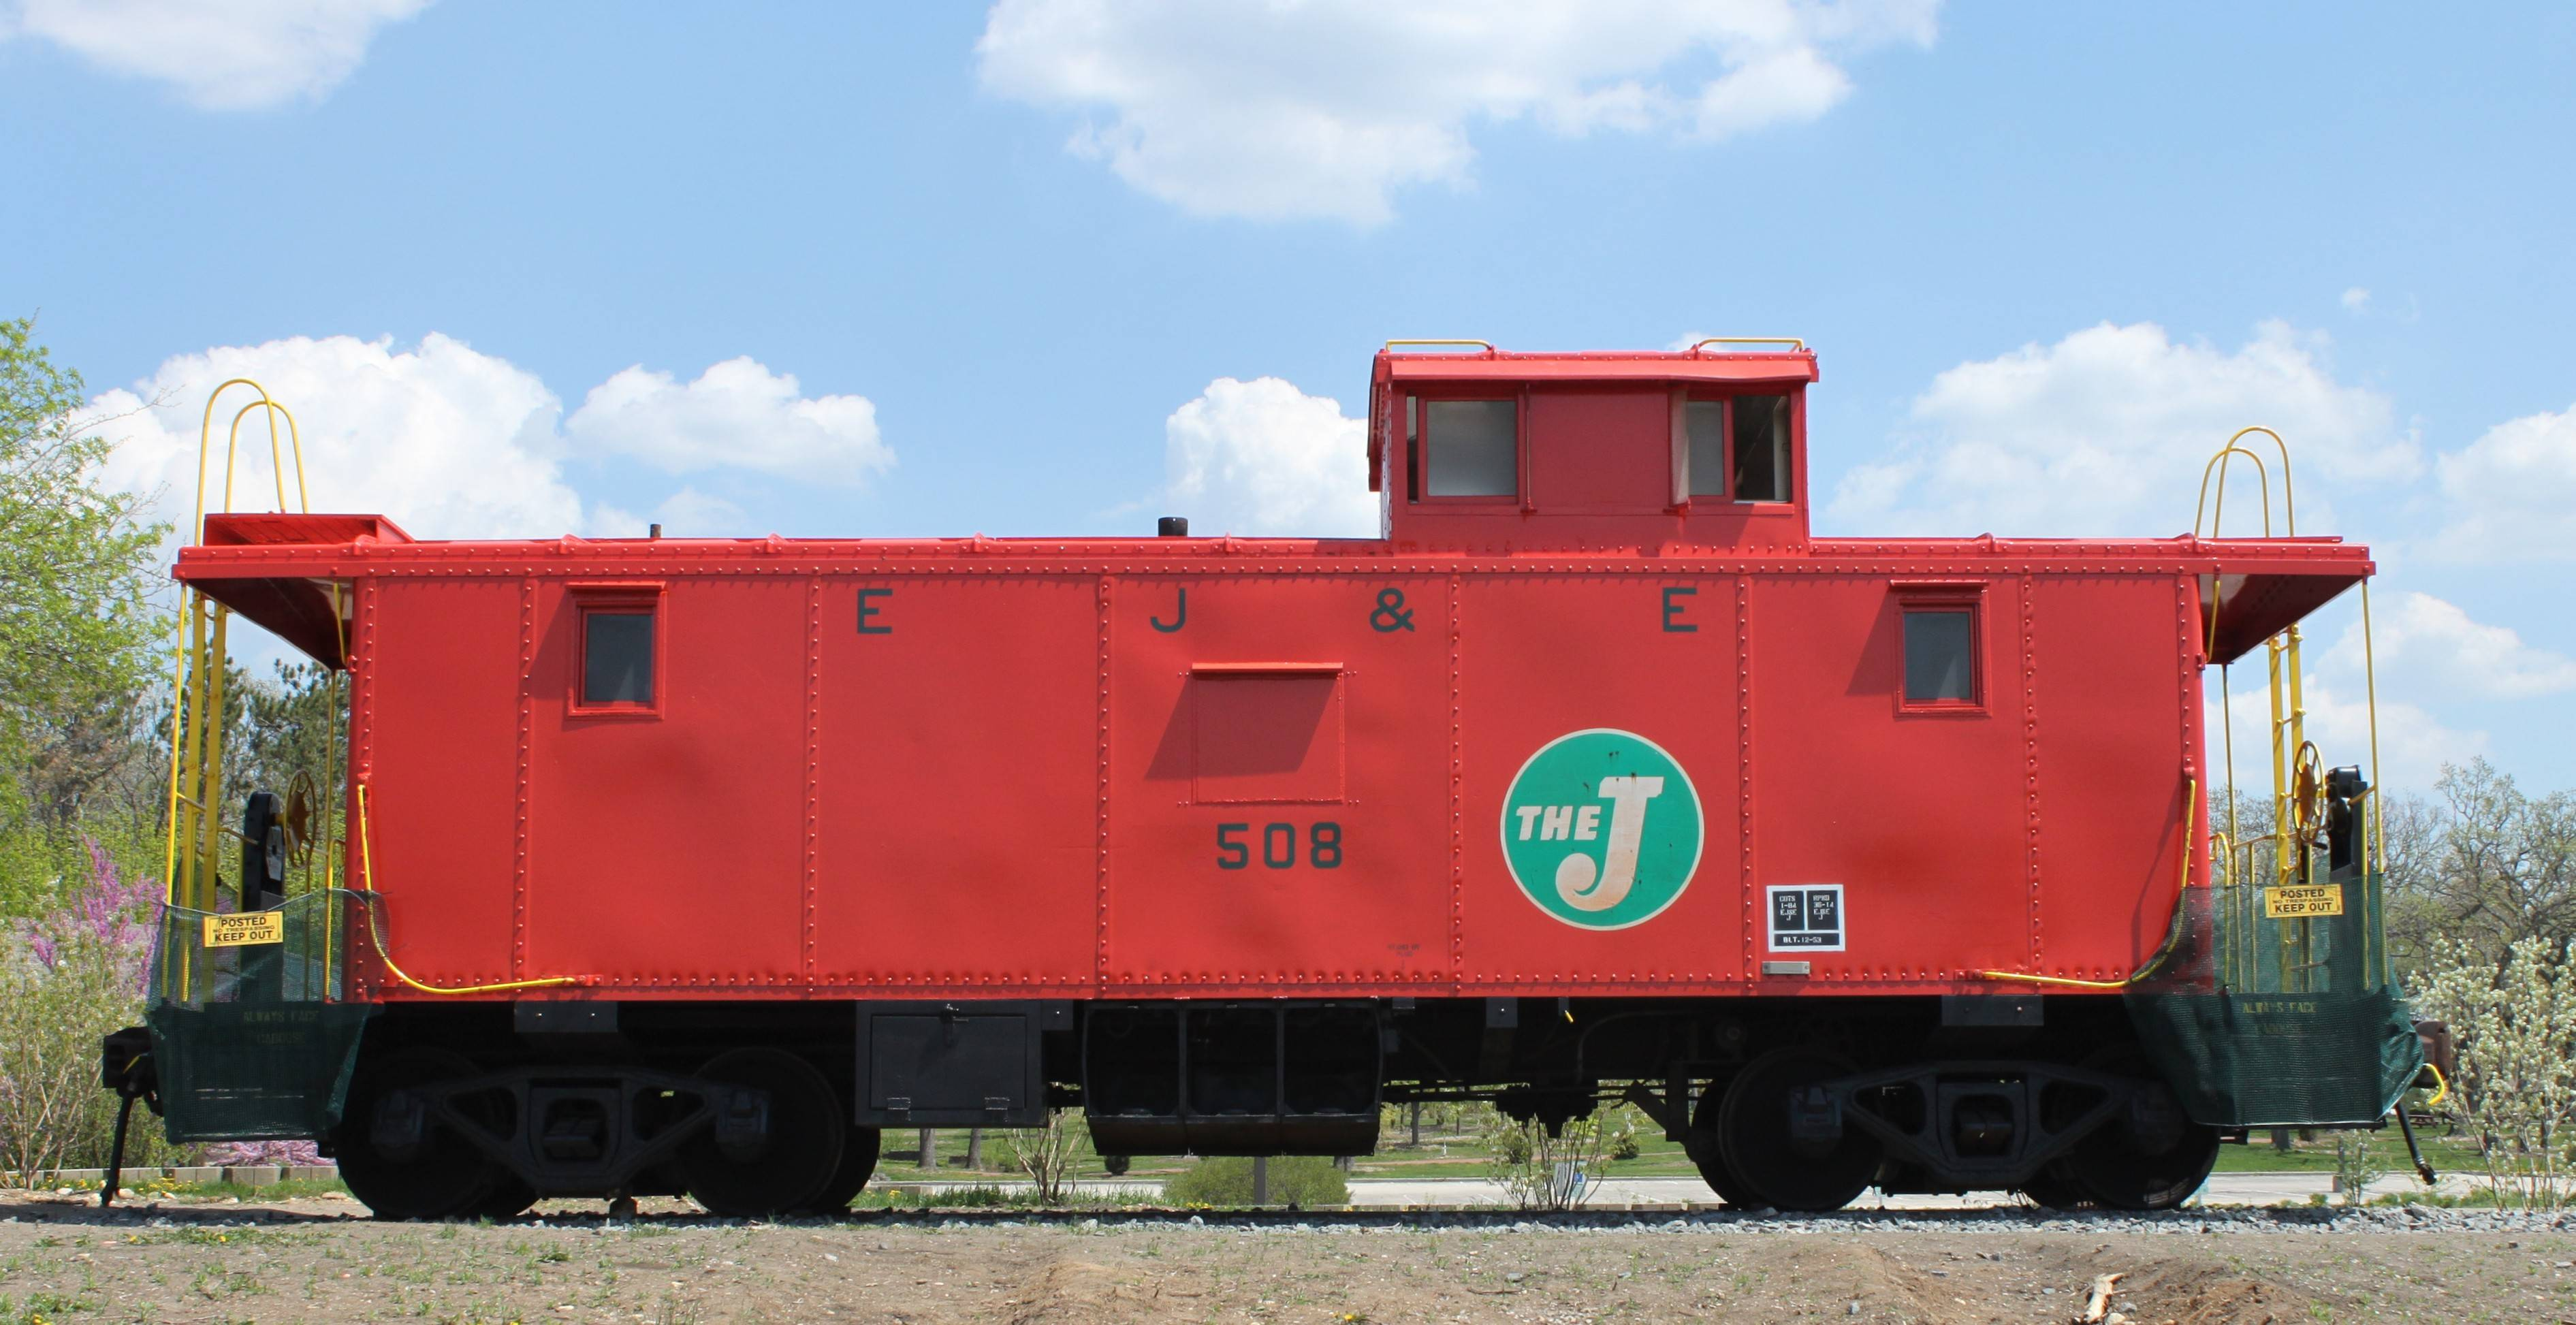 The EJ&E caboose is on display at Reed-Keppler Park in West Chicago.